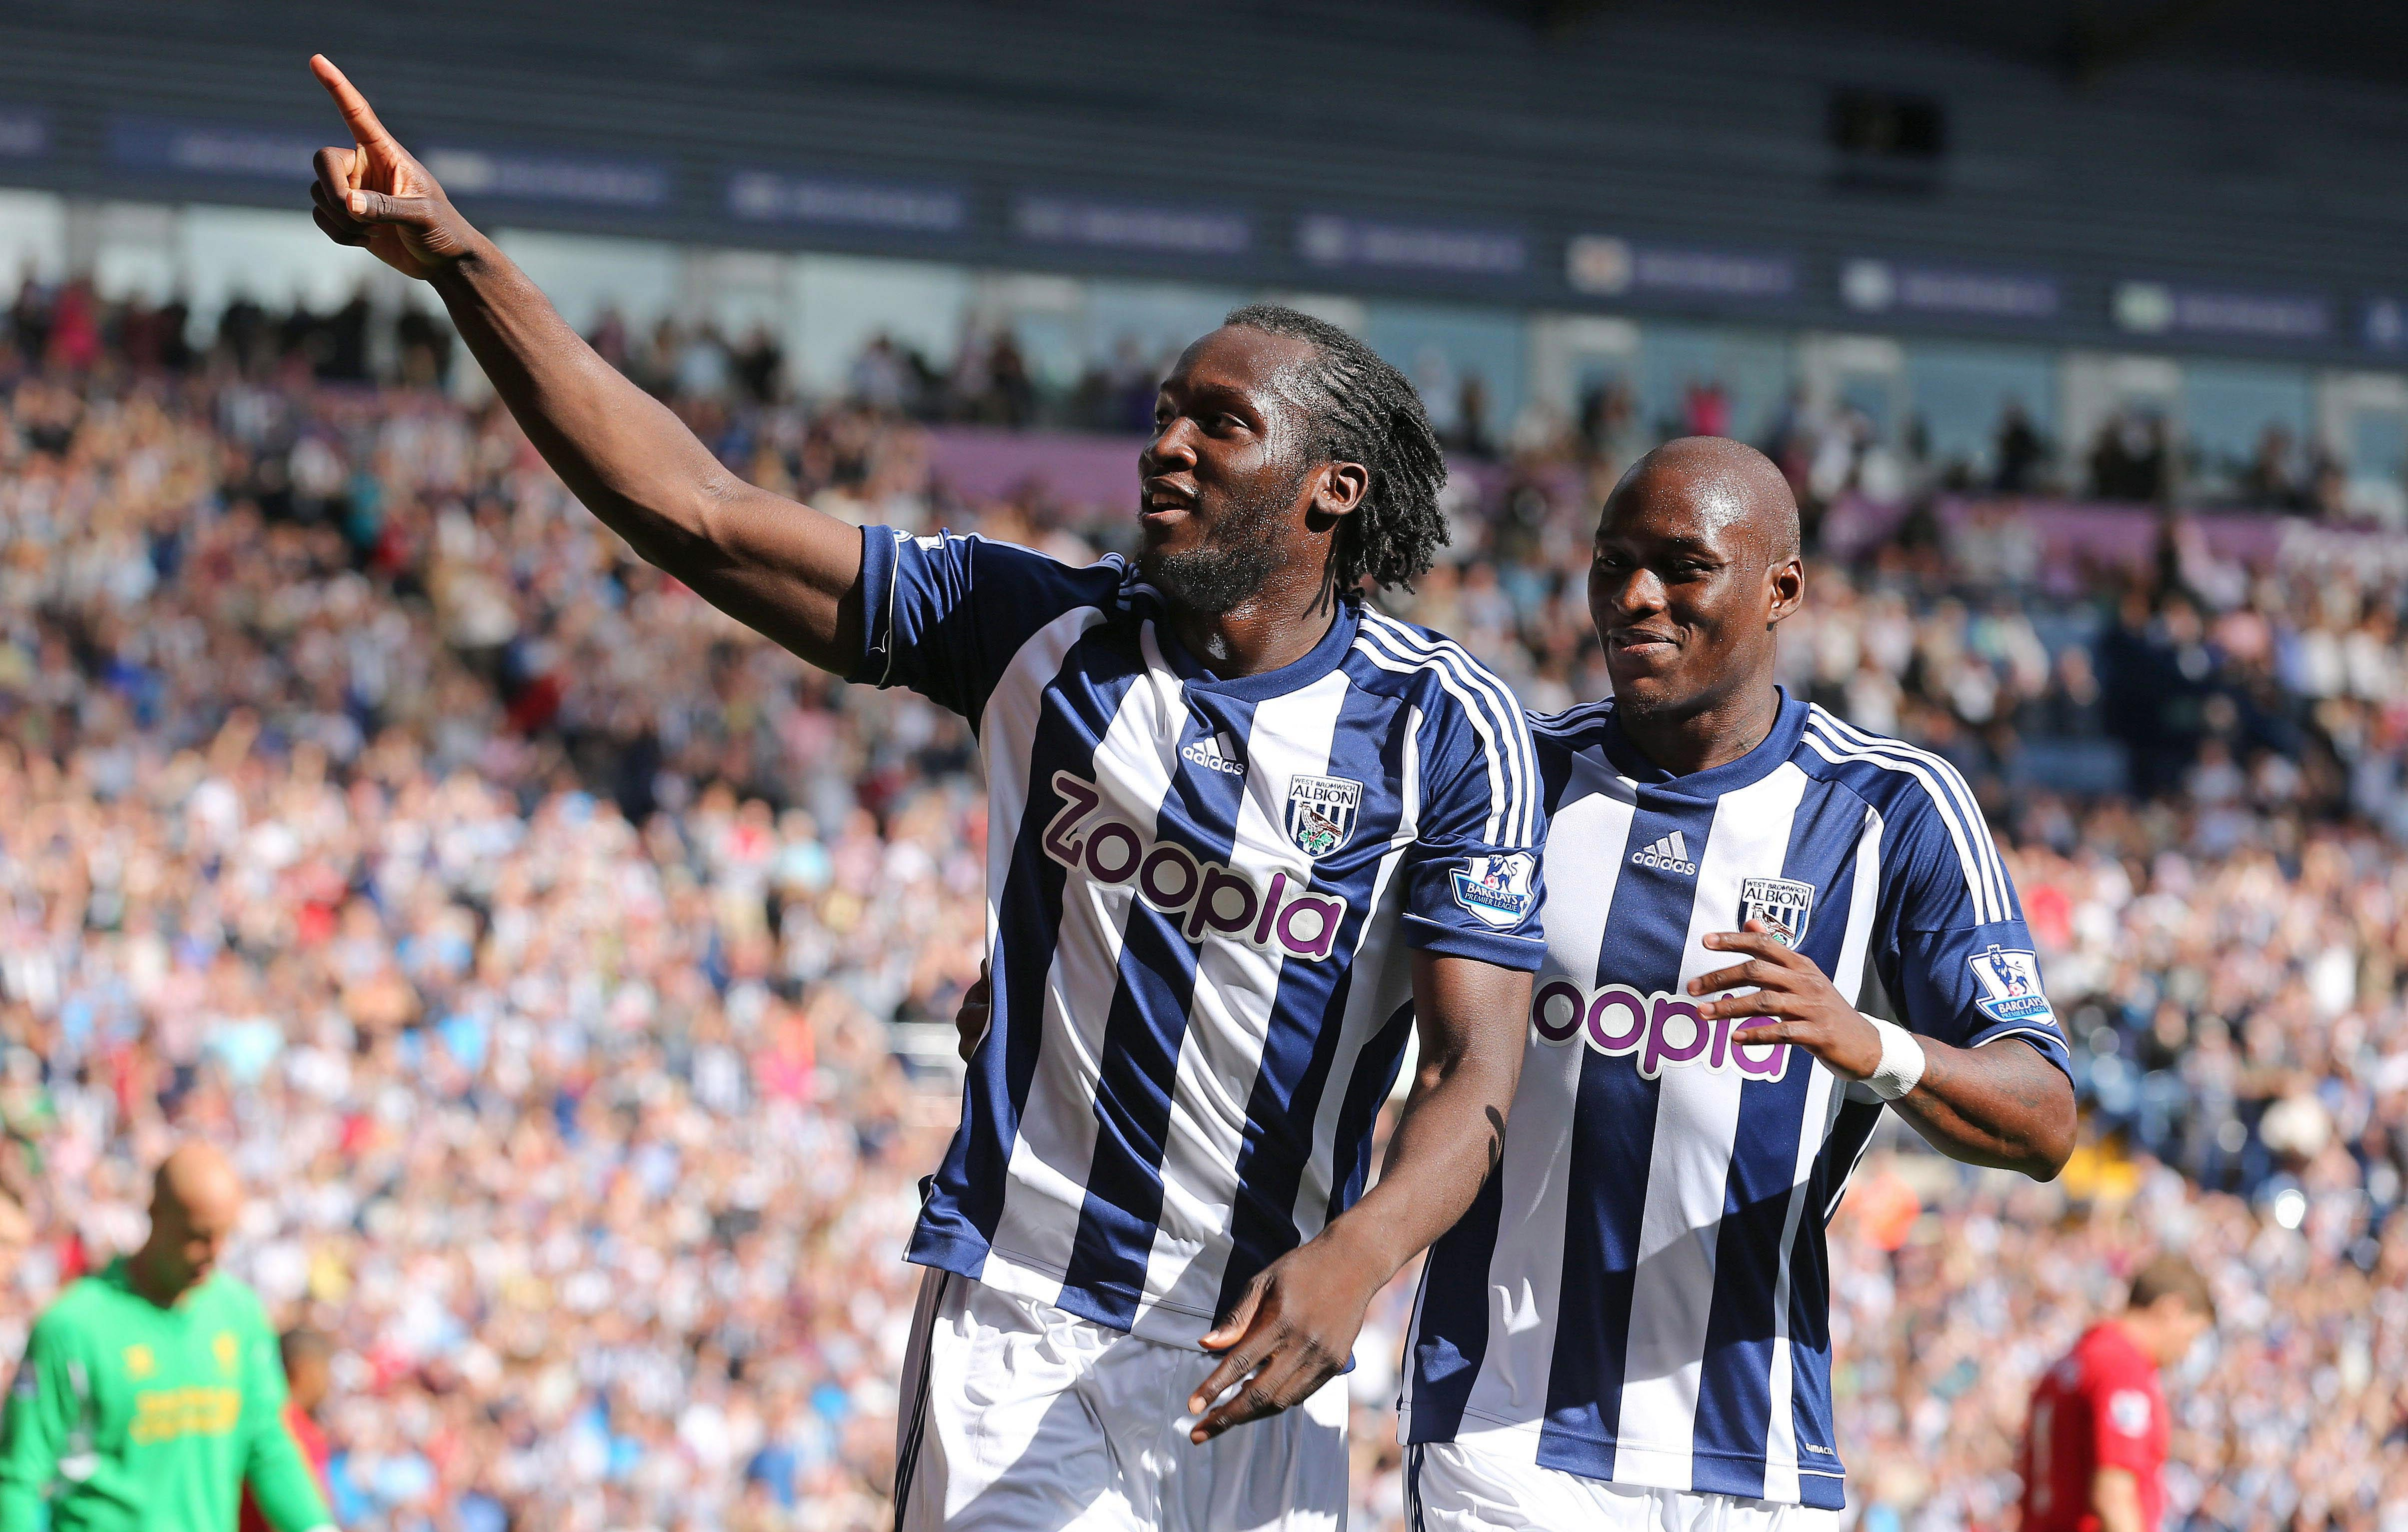 West Brom gave Lukaku his first chance in English football